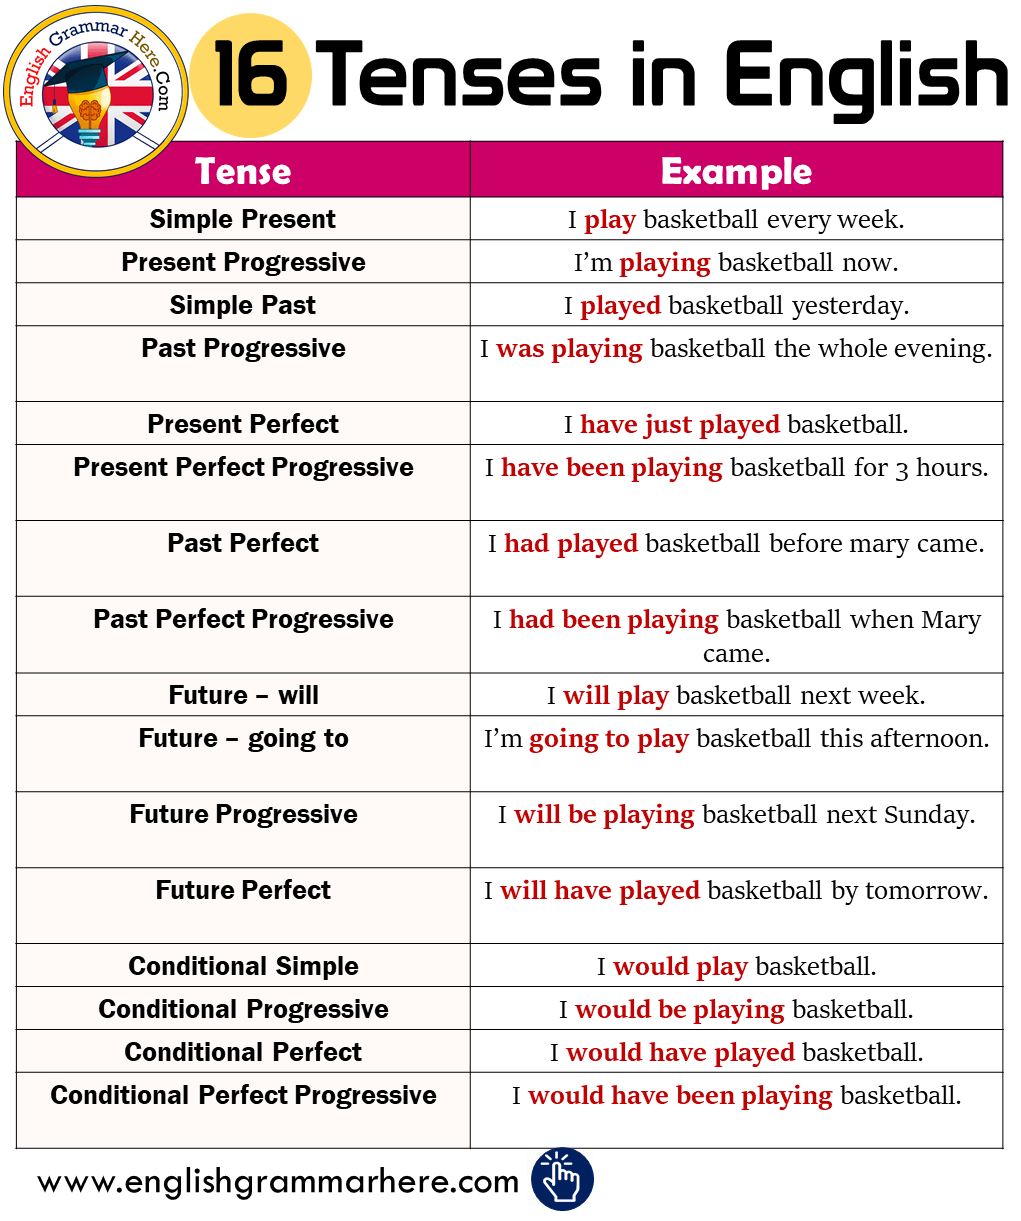 16 Tenses and Example Sentences in English